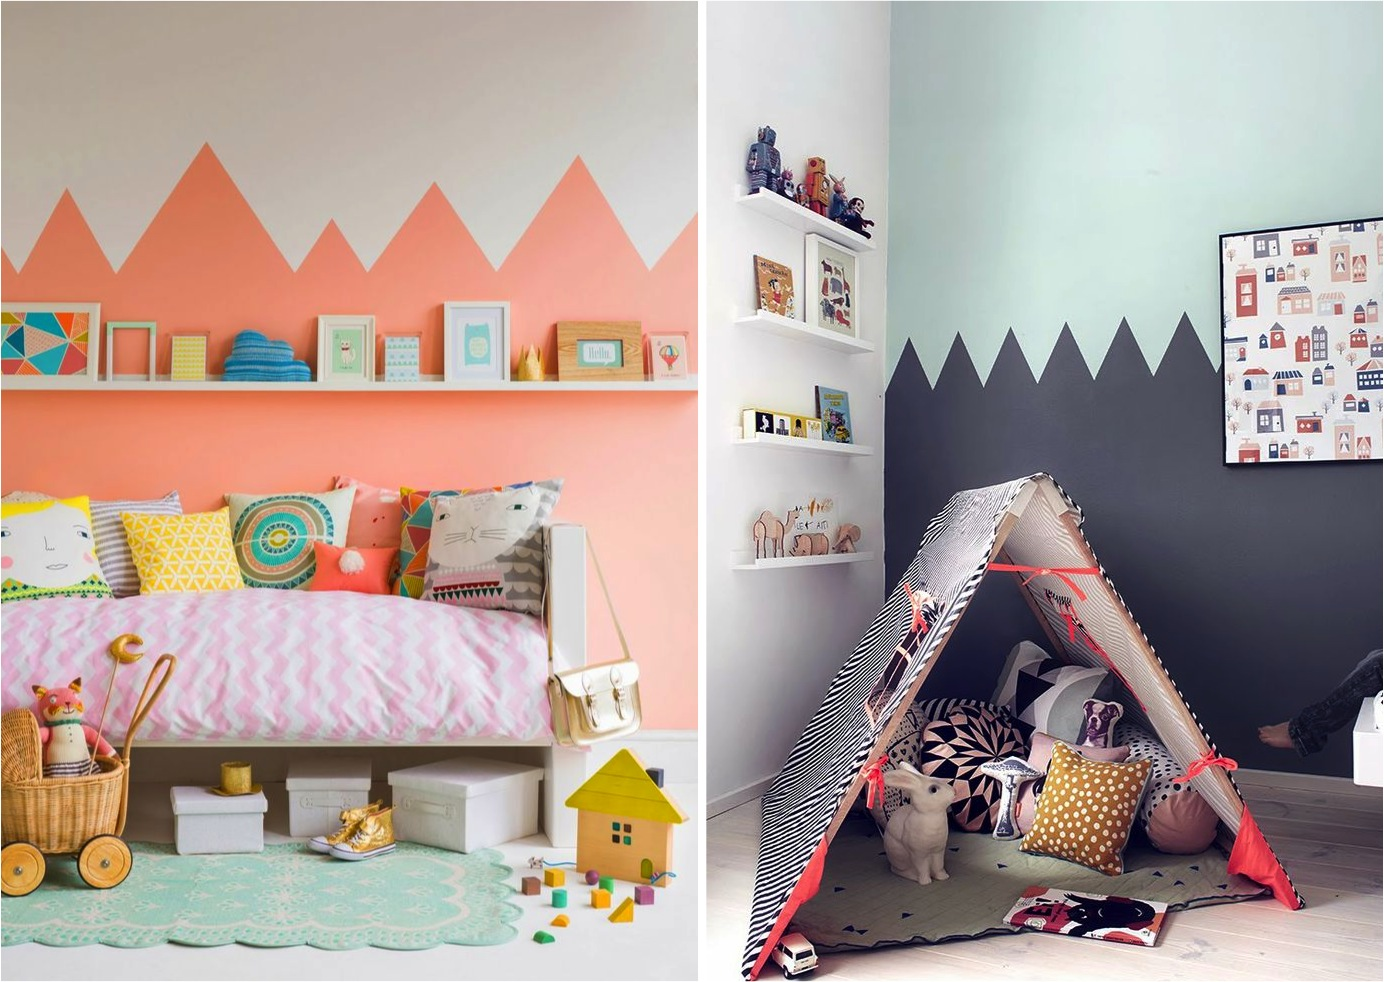 Fun and creative paint ideas for your walls